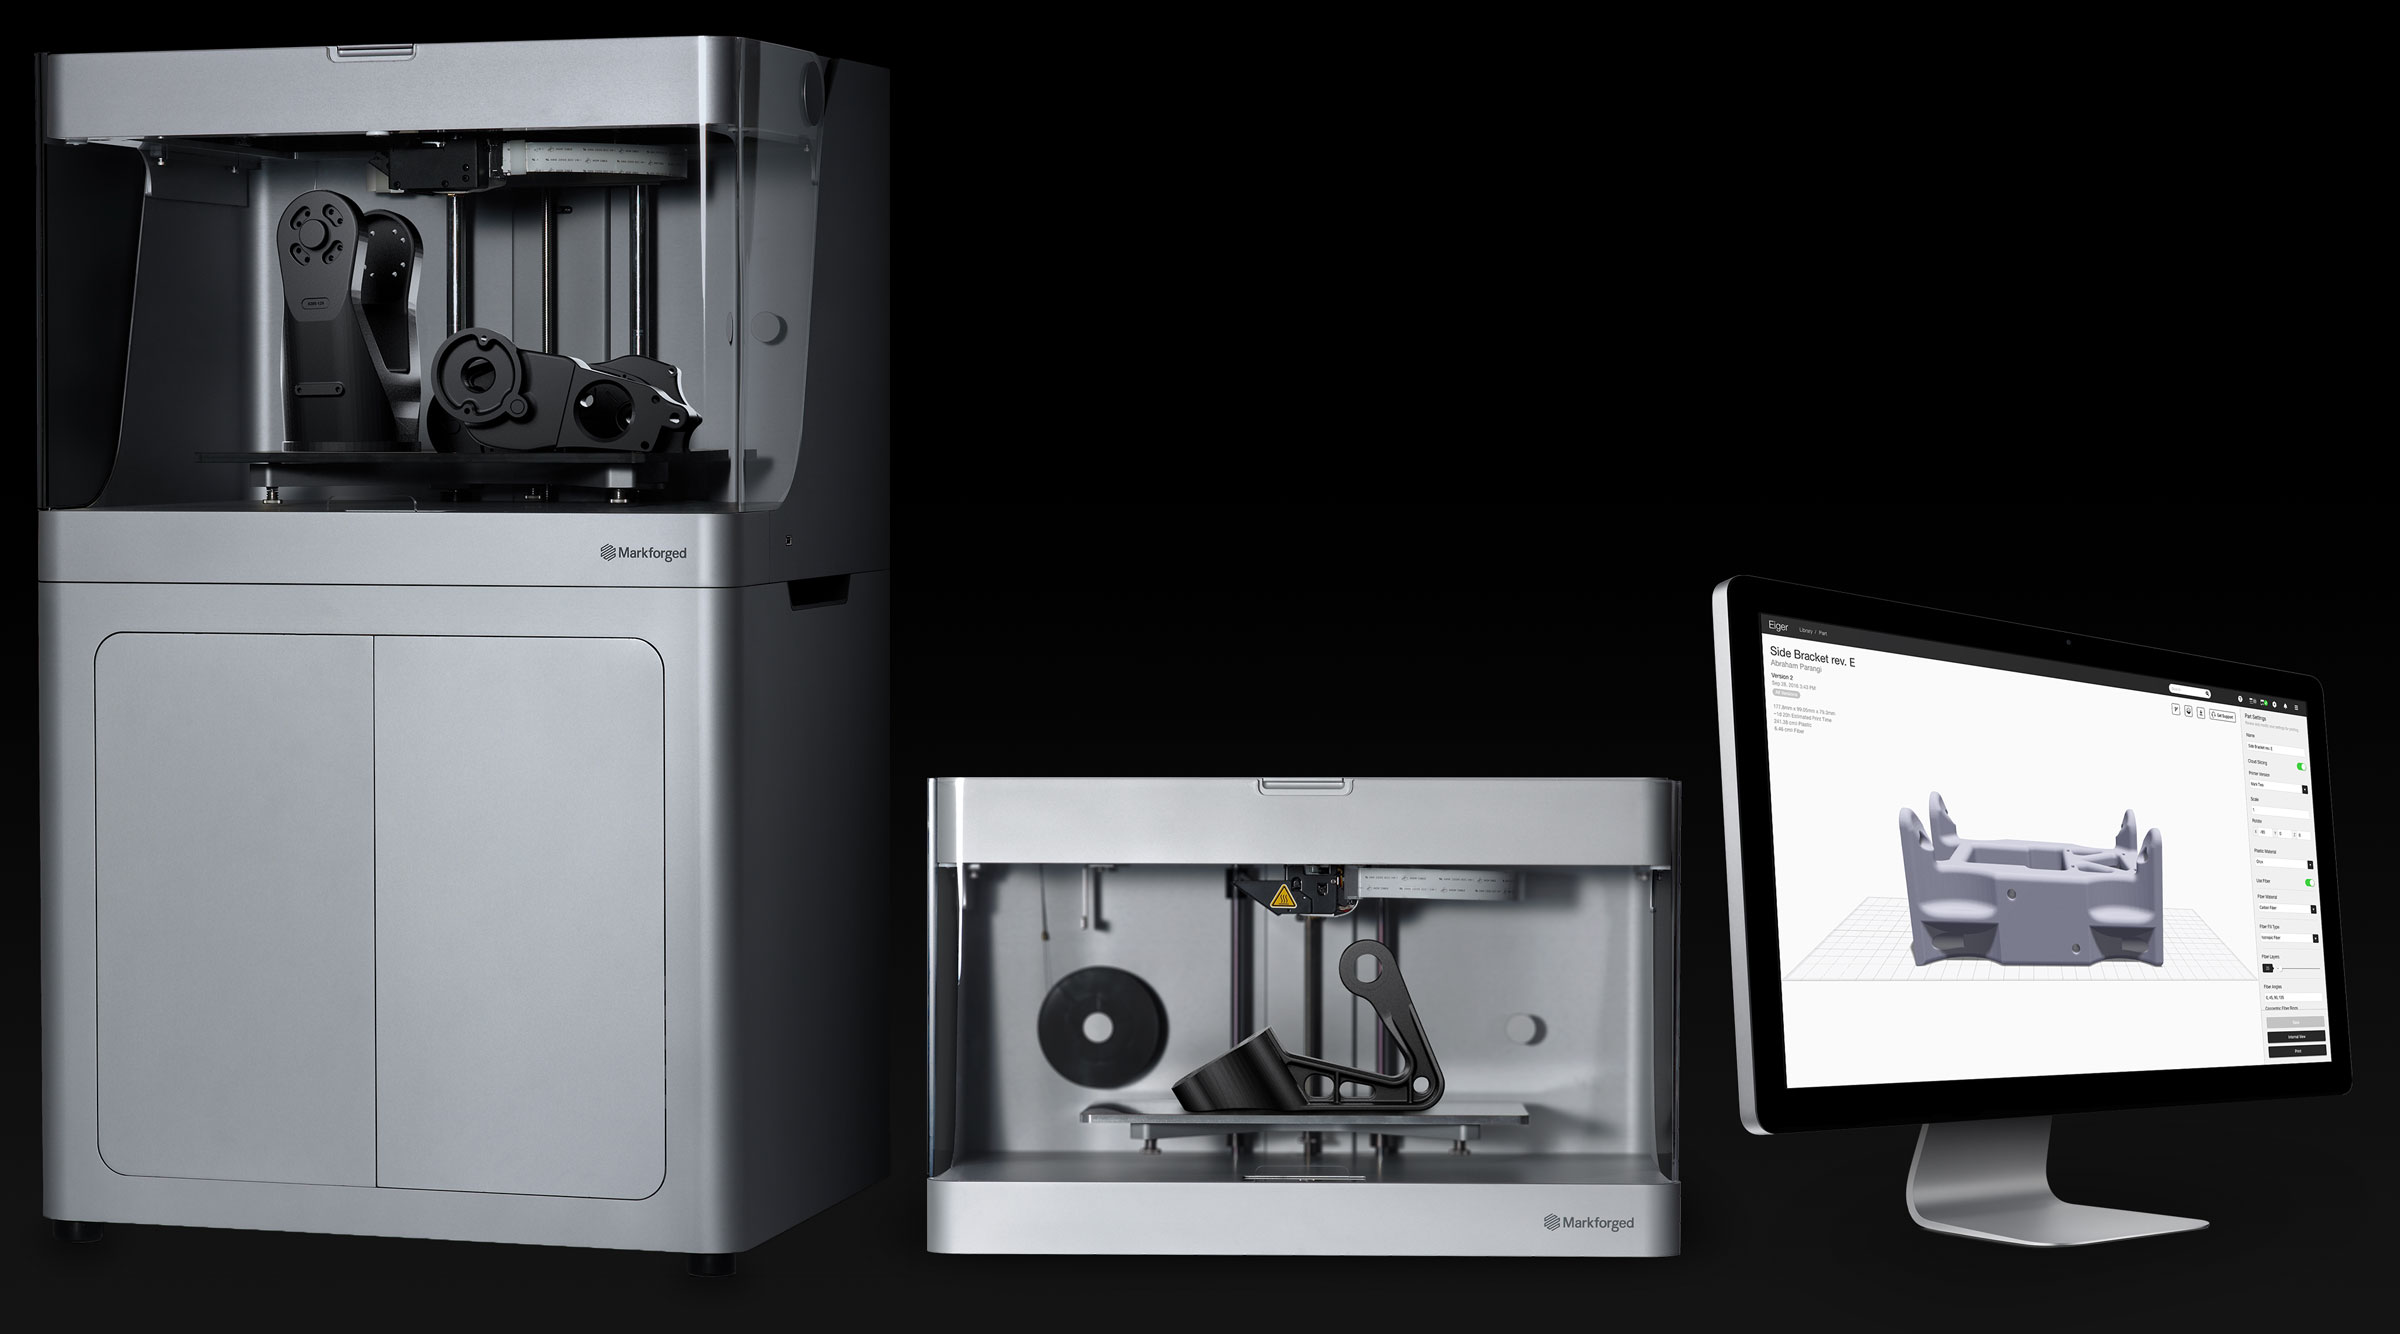 Markforged 3D printers and software